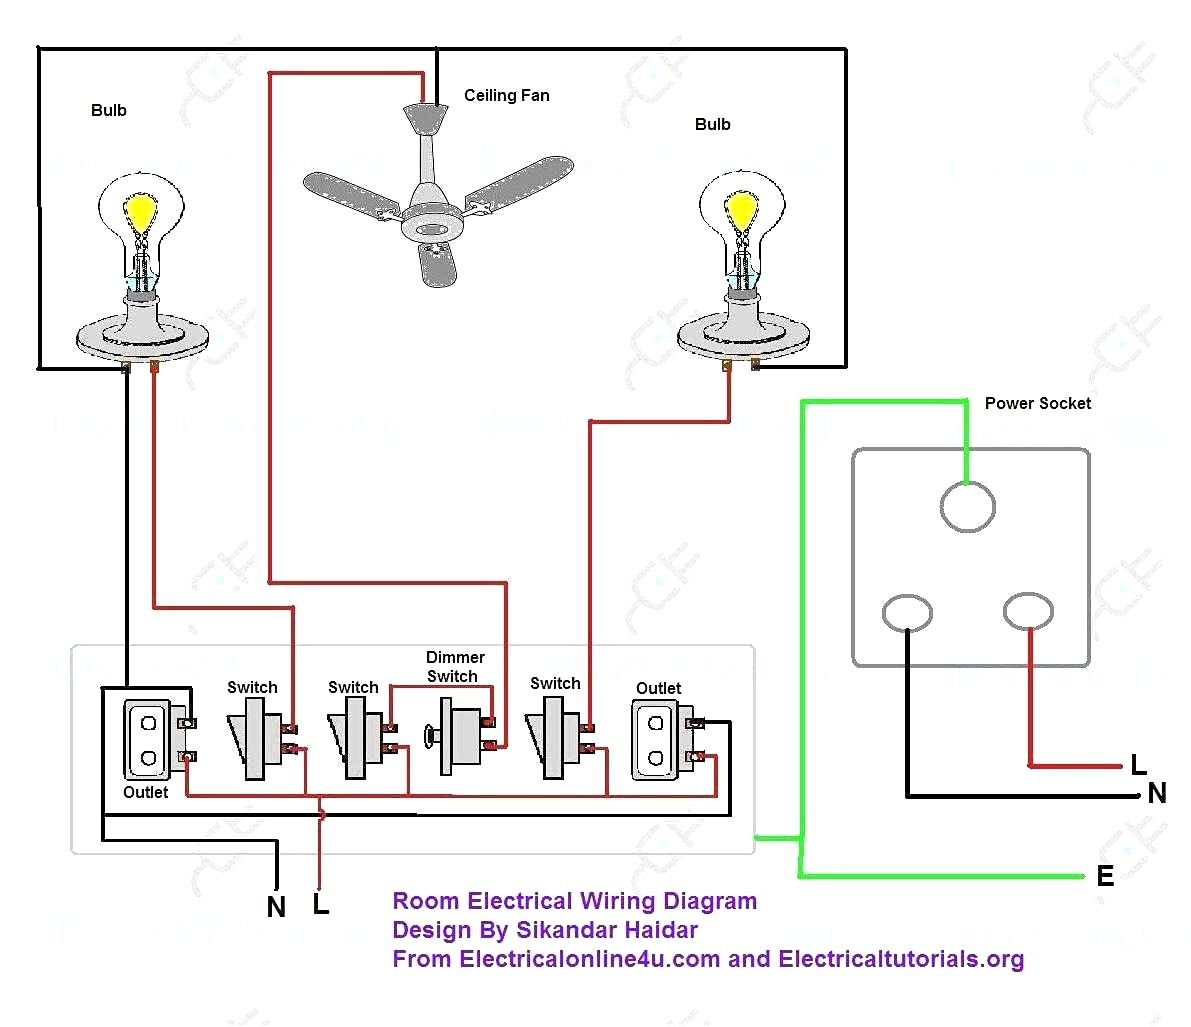 Pin By Roel Verwoert On Engaging Home Electrical Wiring Basic Electrical Wiring Electrical Wiring